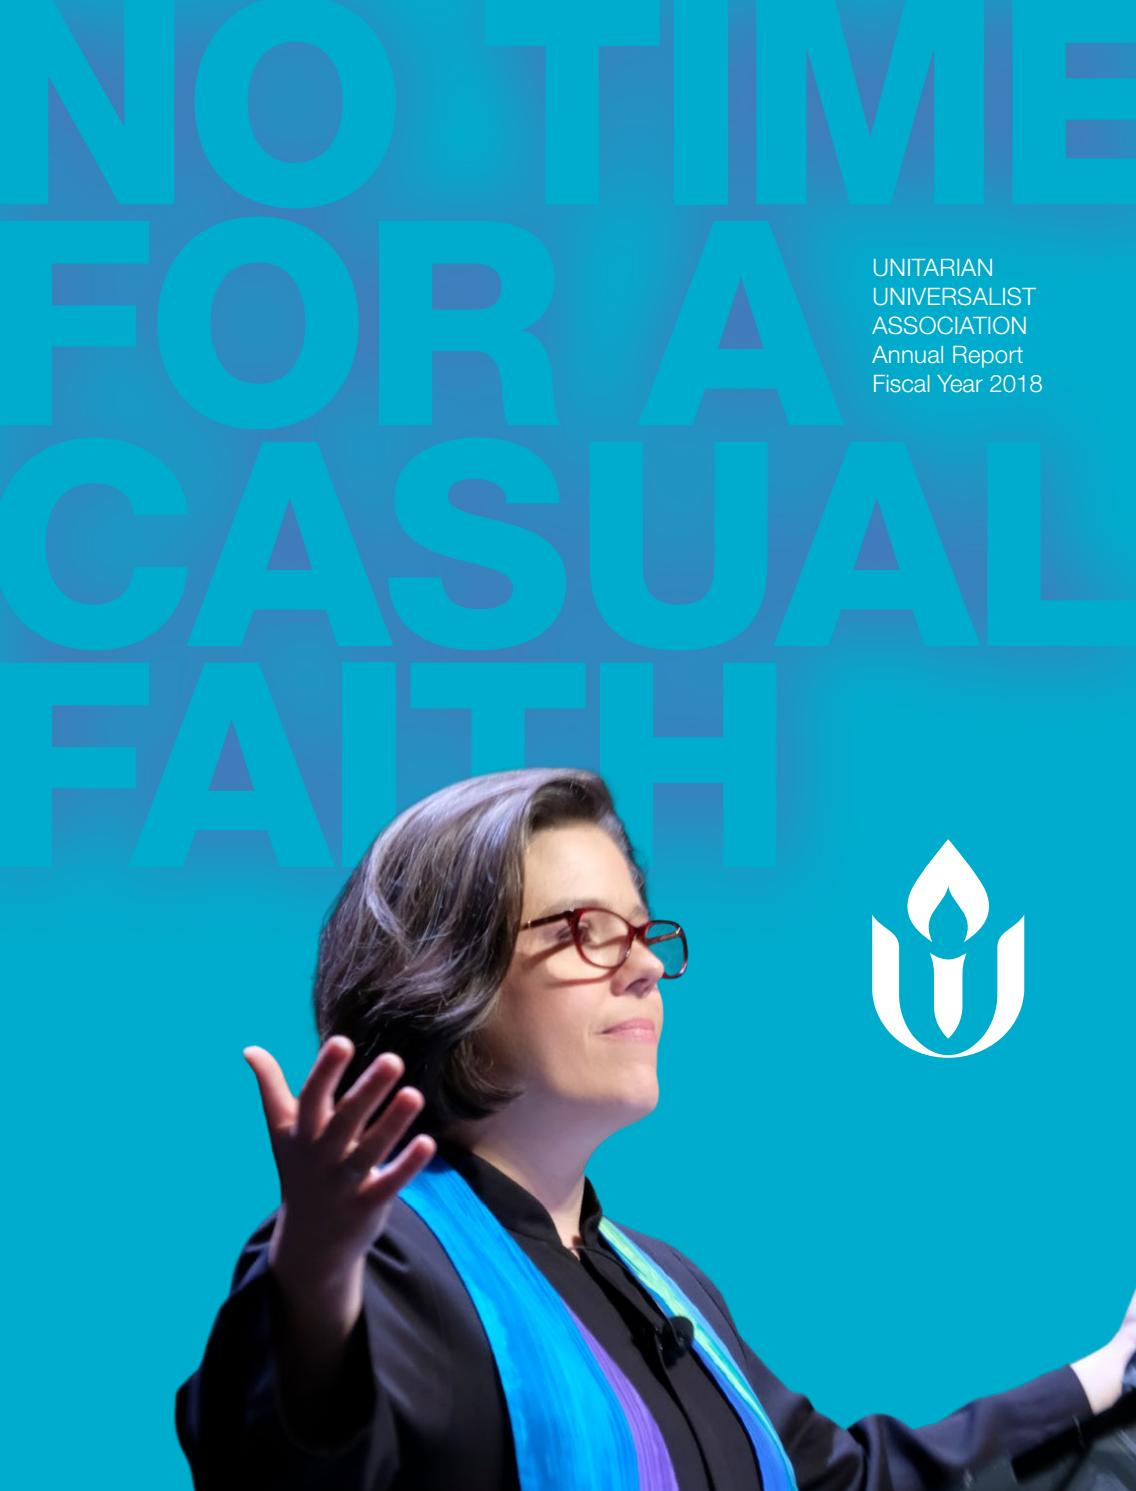 7a0c4d2a5 UUA FY2018 Annual Report by UUA Stewardship and Development Office - issuu